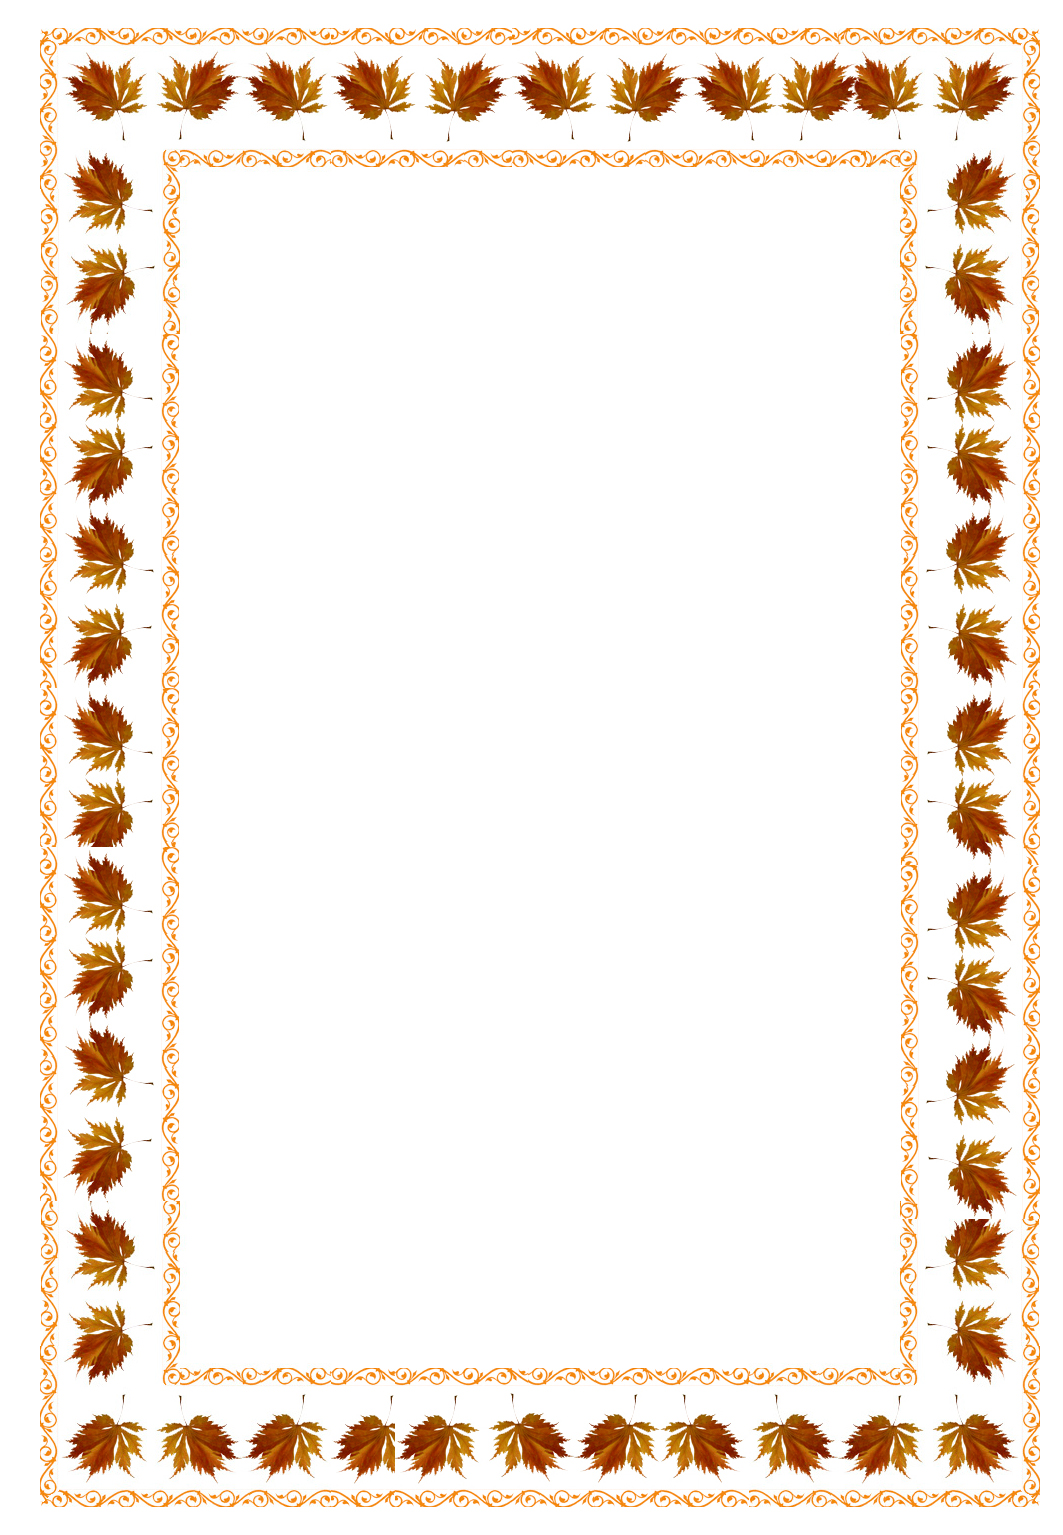 frame with fall leaves